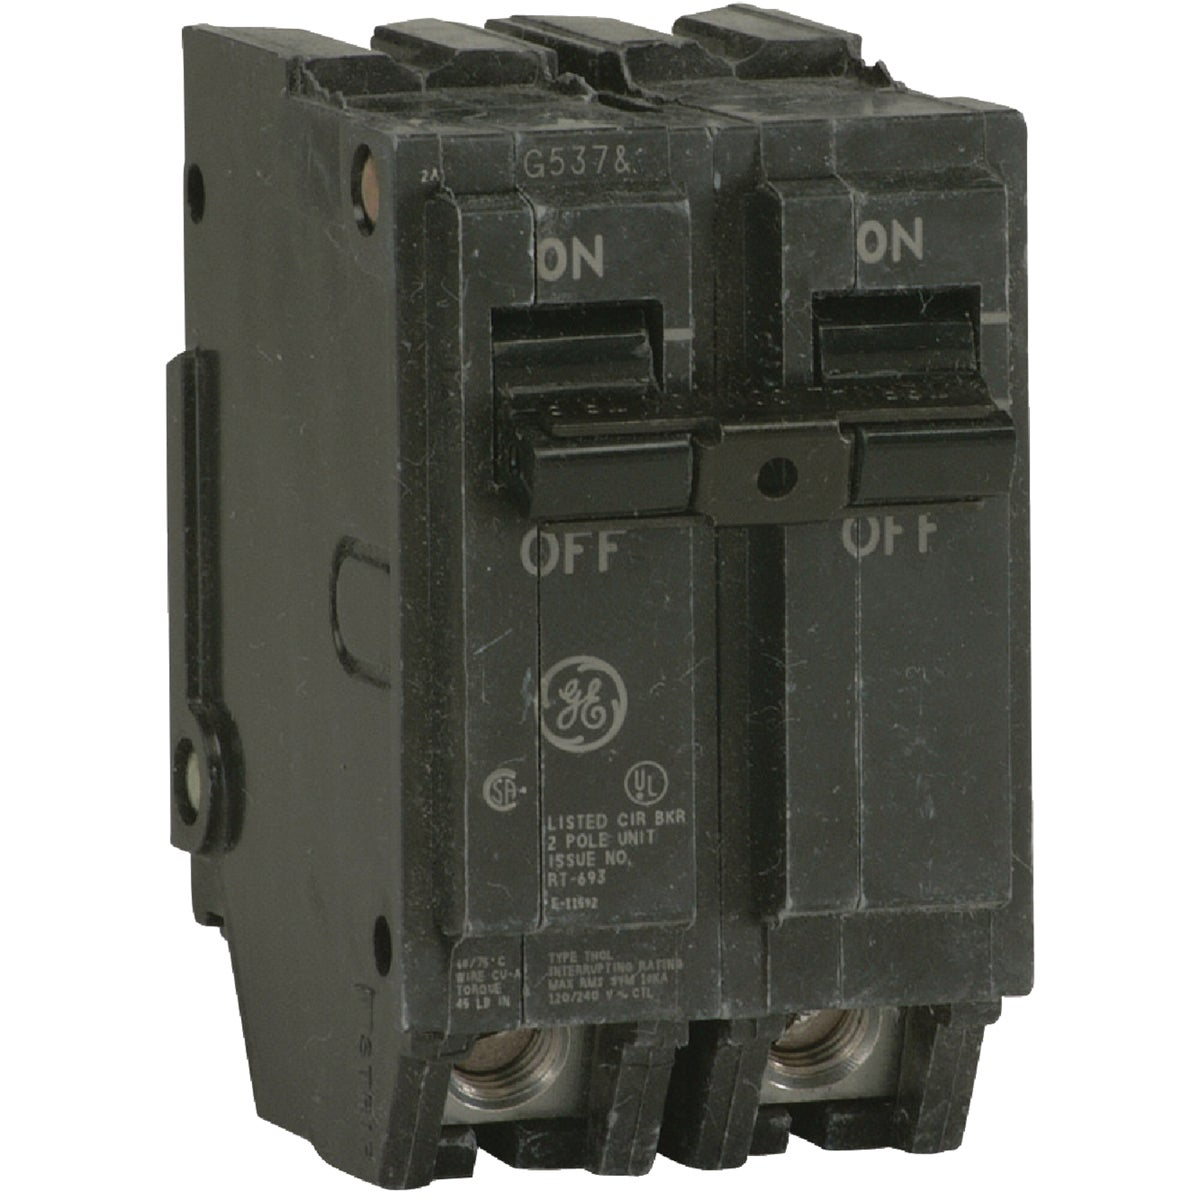 50A 2P CIRCUIT BREAKER - THQL2150 by G E Industrial